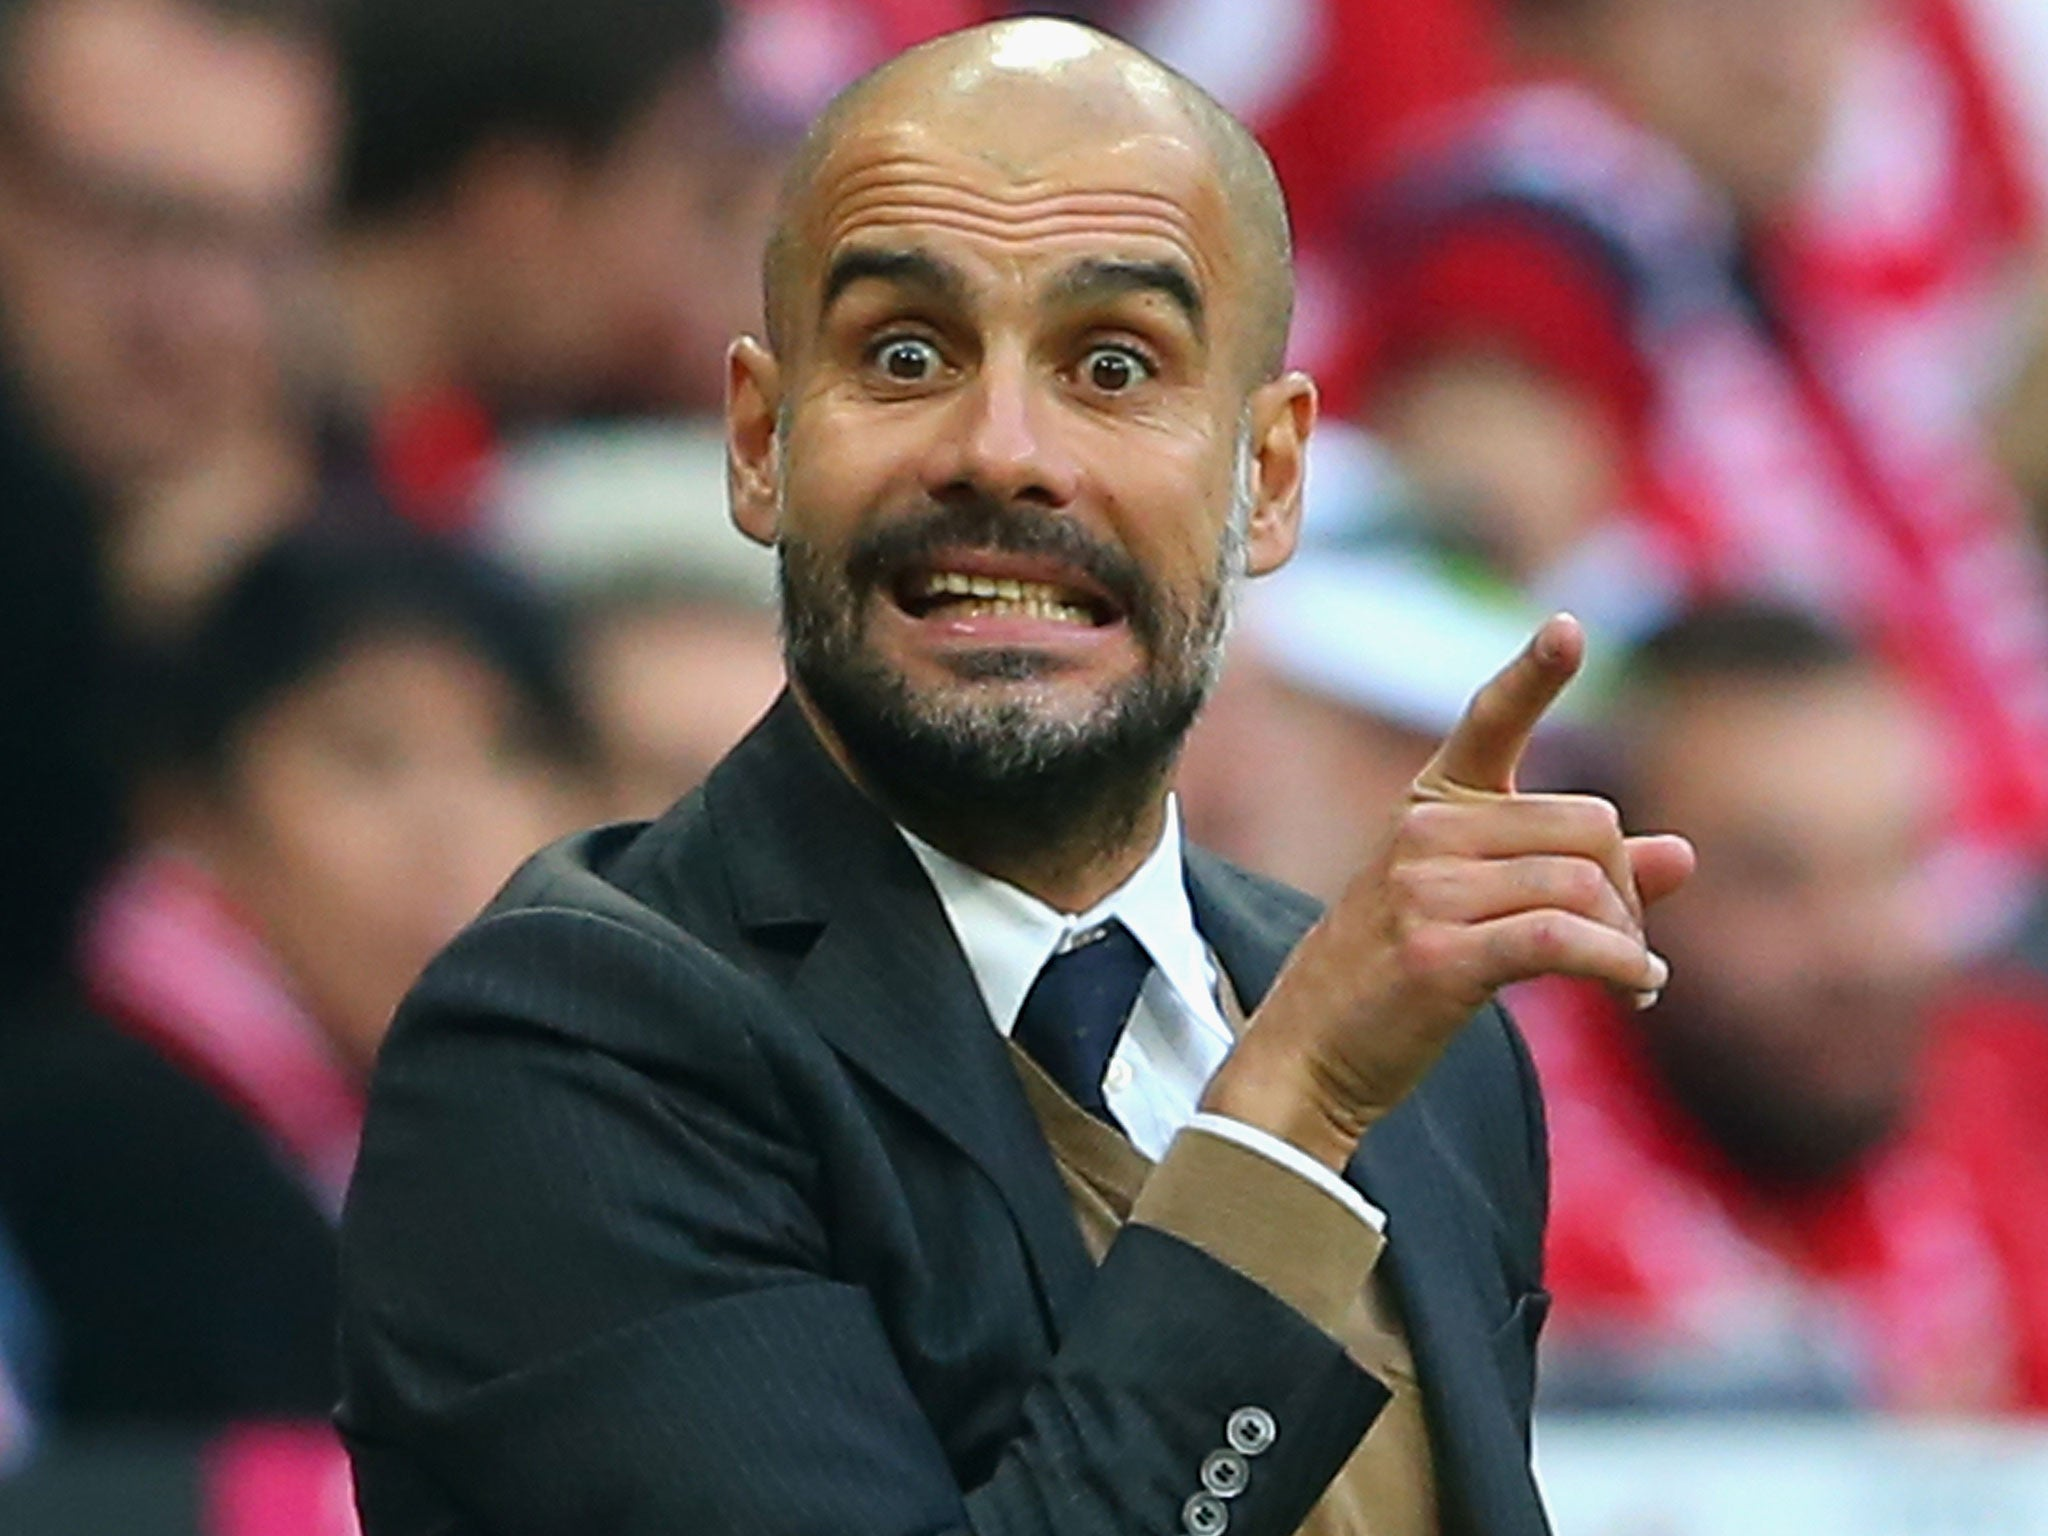 http://static.independent.co.uk/s3fs-public/thumbnails/image/2015/11/11/07/Pep-Guardiola1.jpg